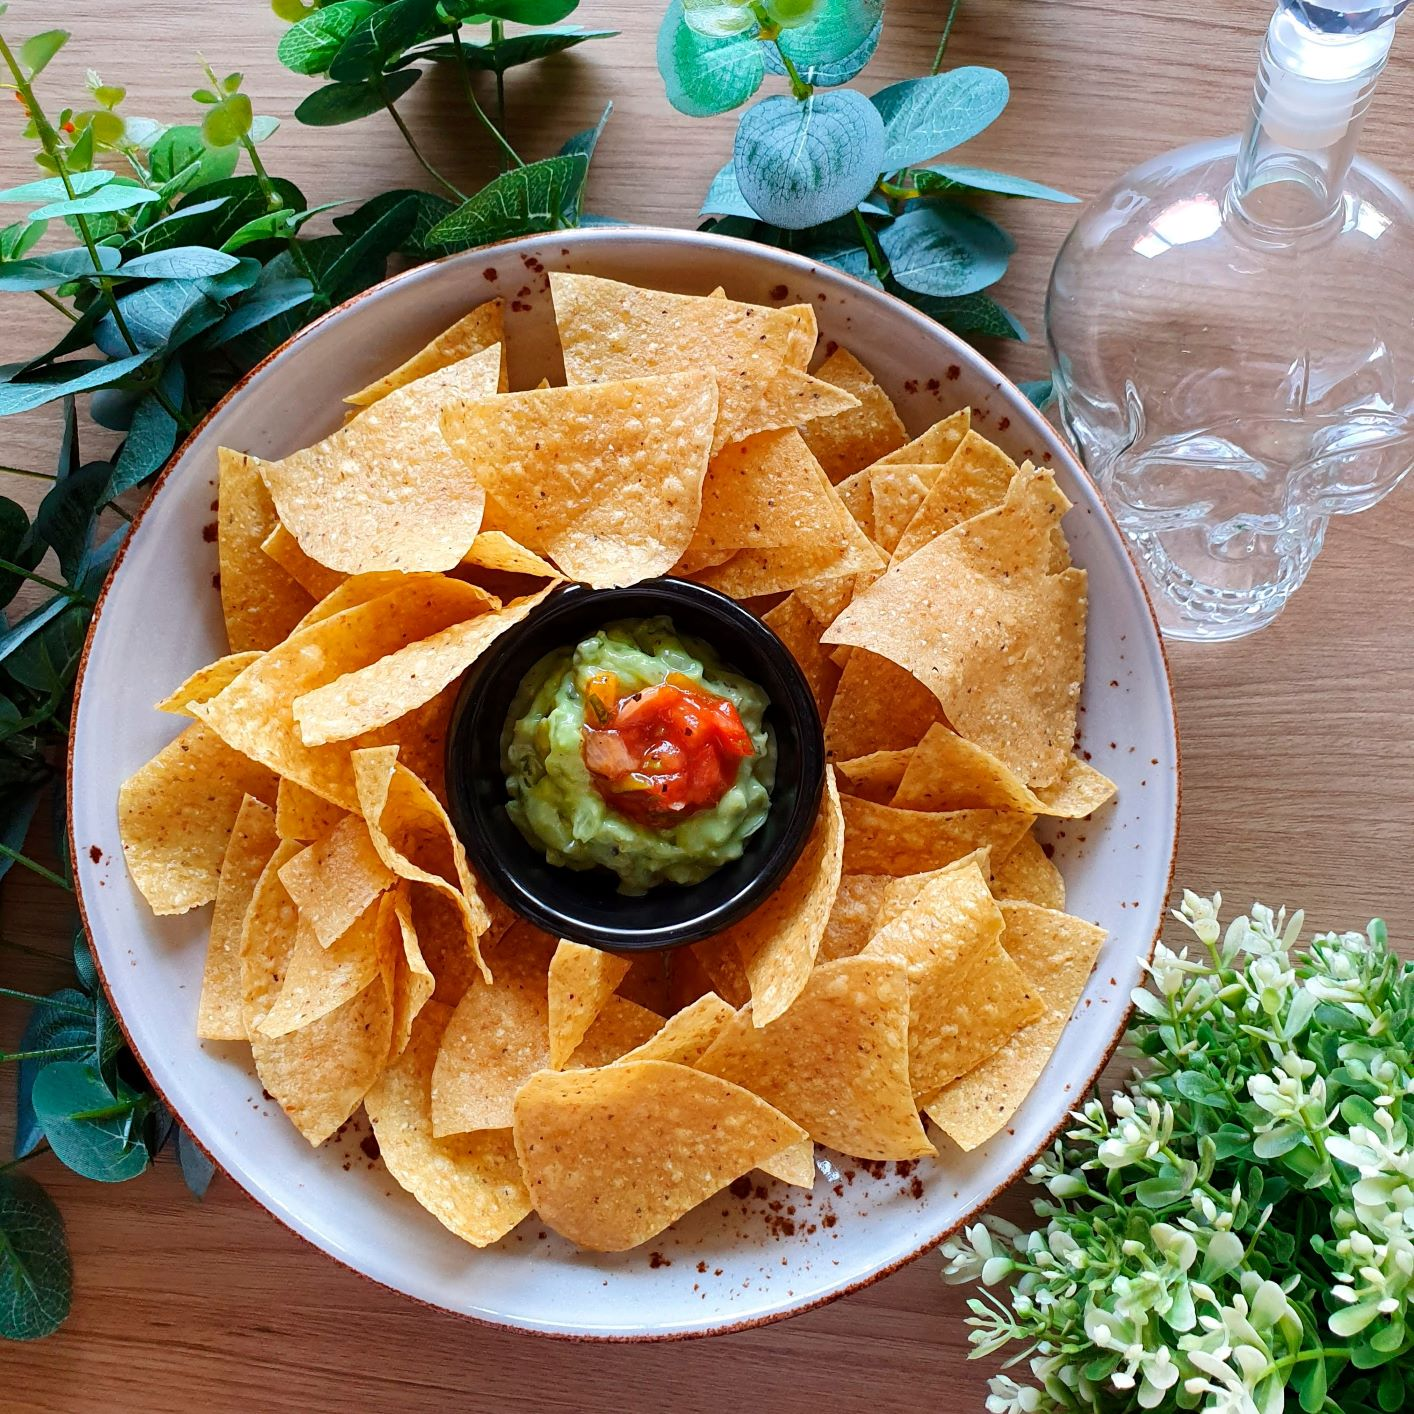 Free Nachos and Guacamole - Yes! It's just for you!